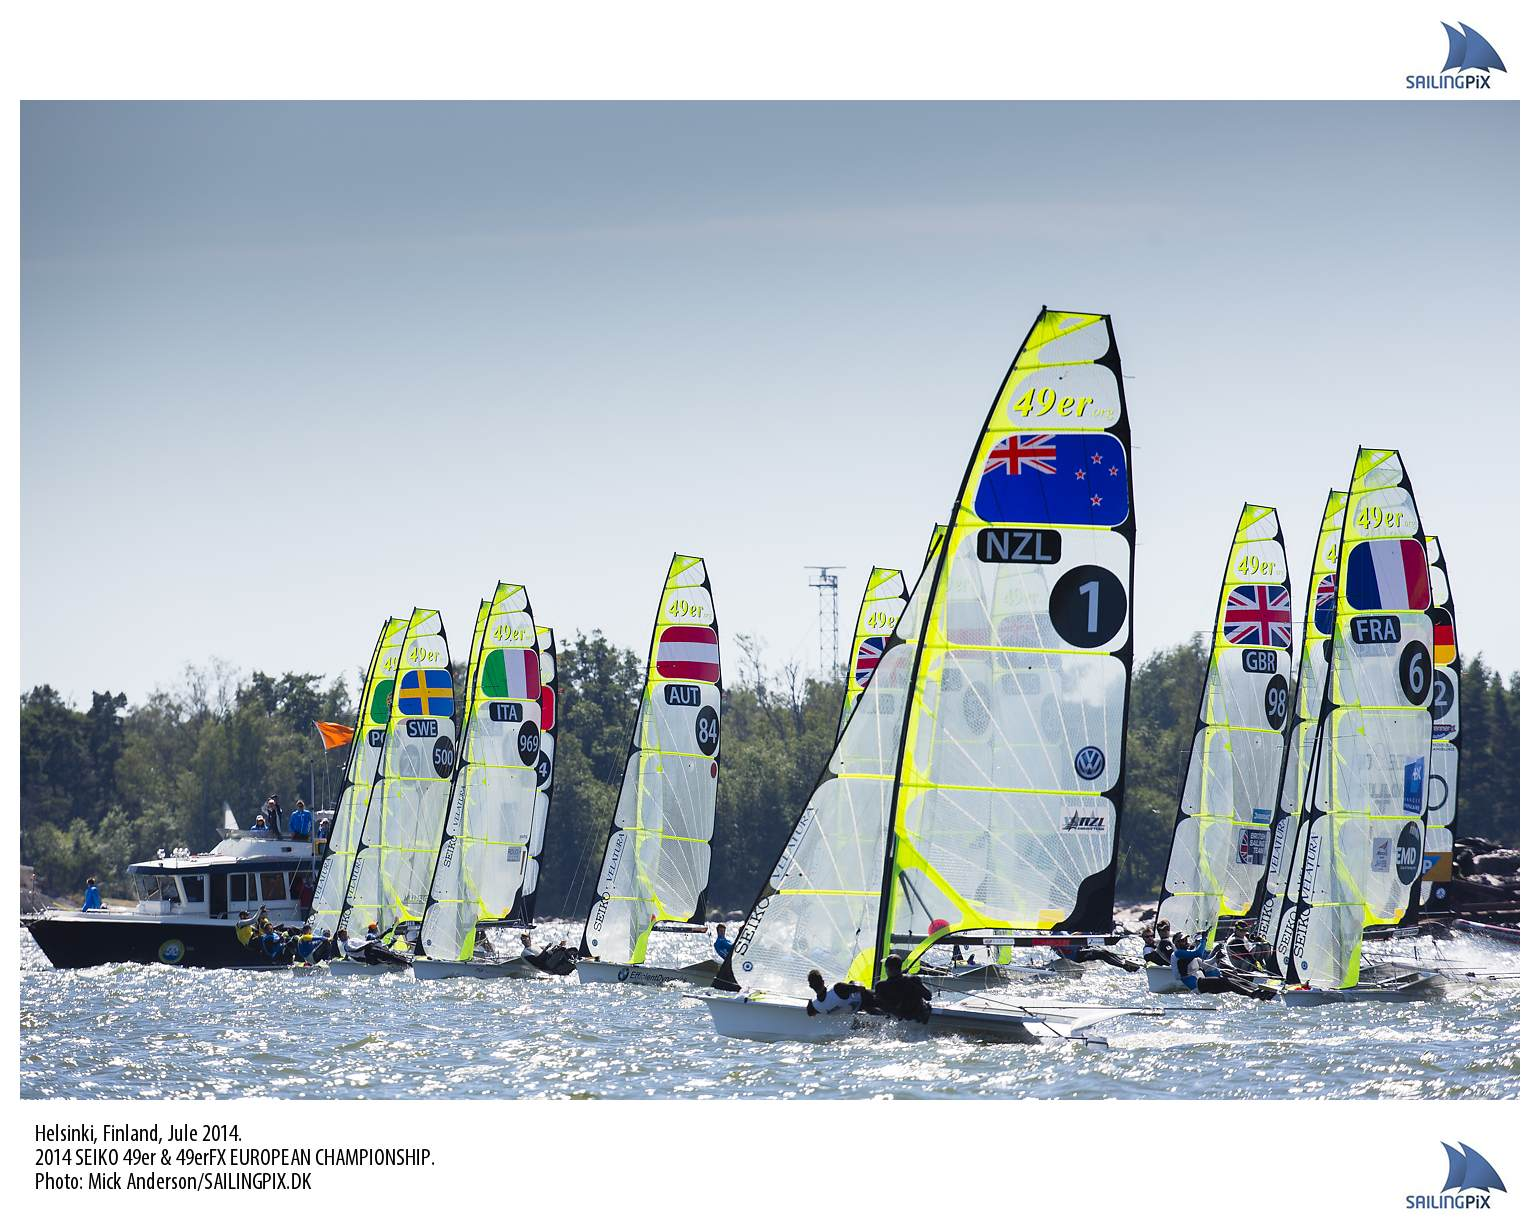 Port tack start for Burling and Tuke